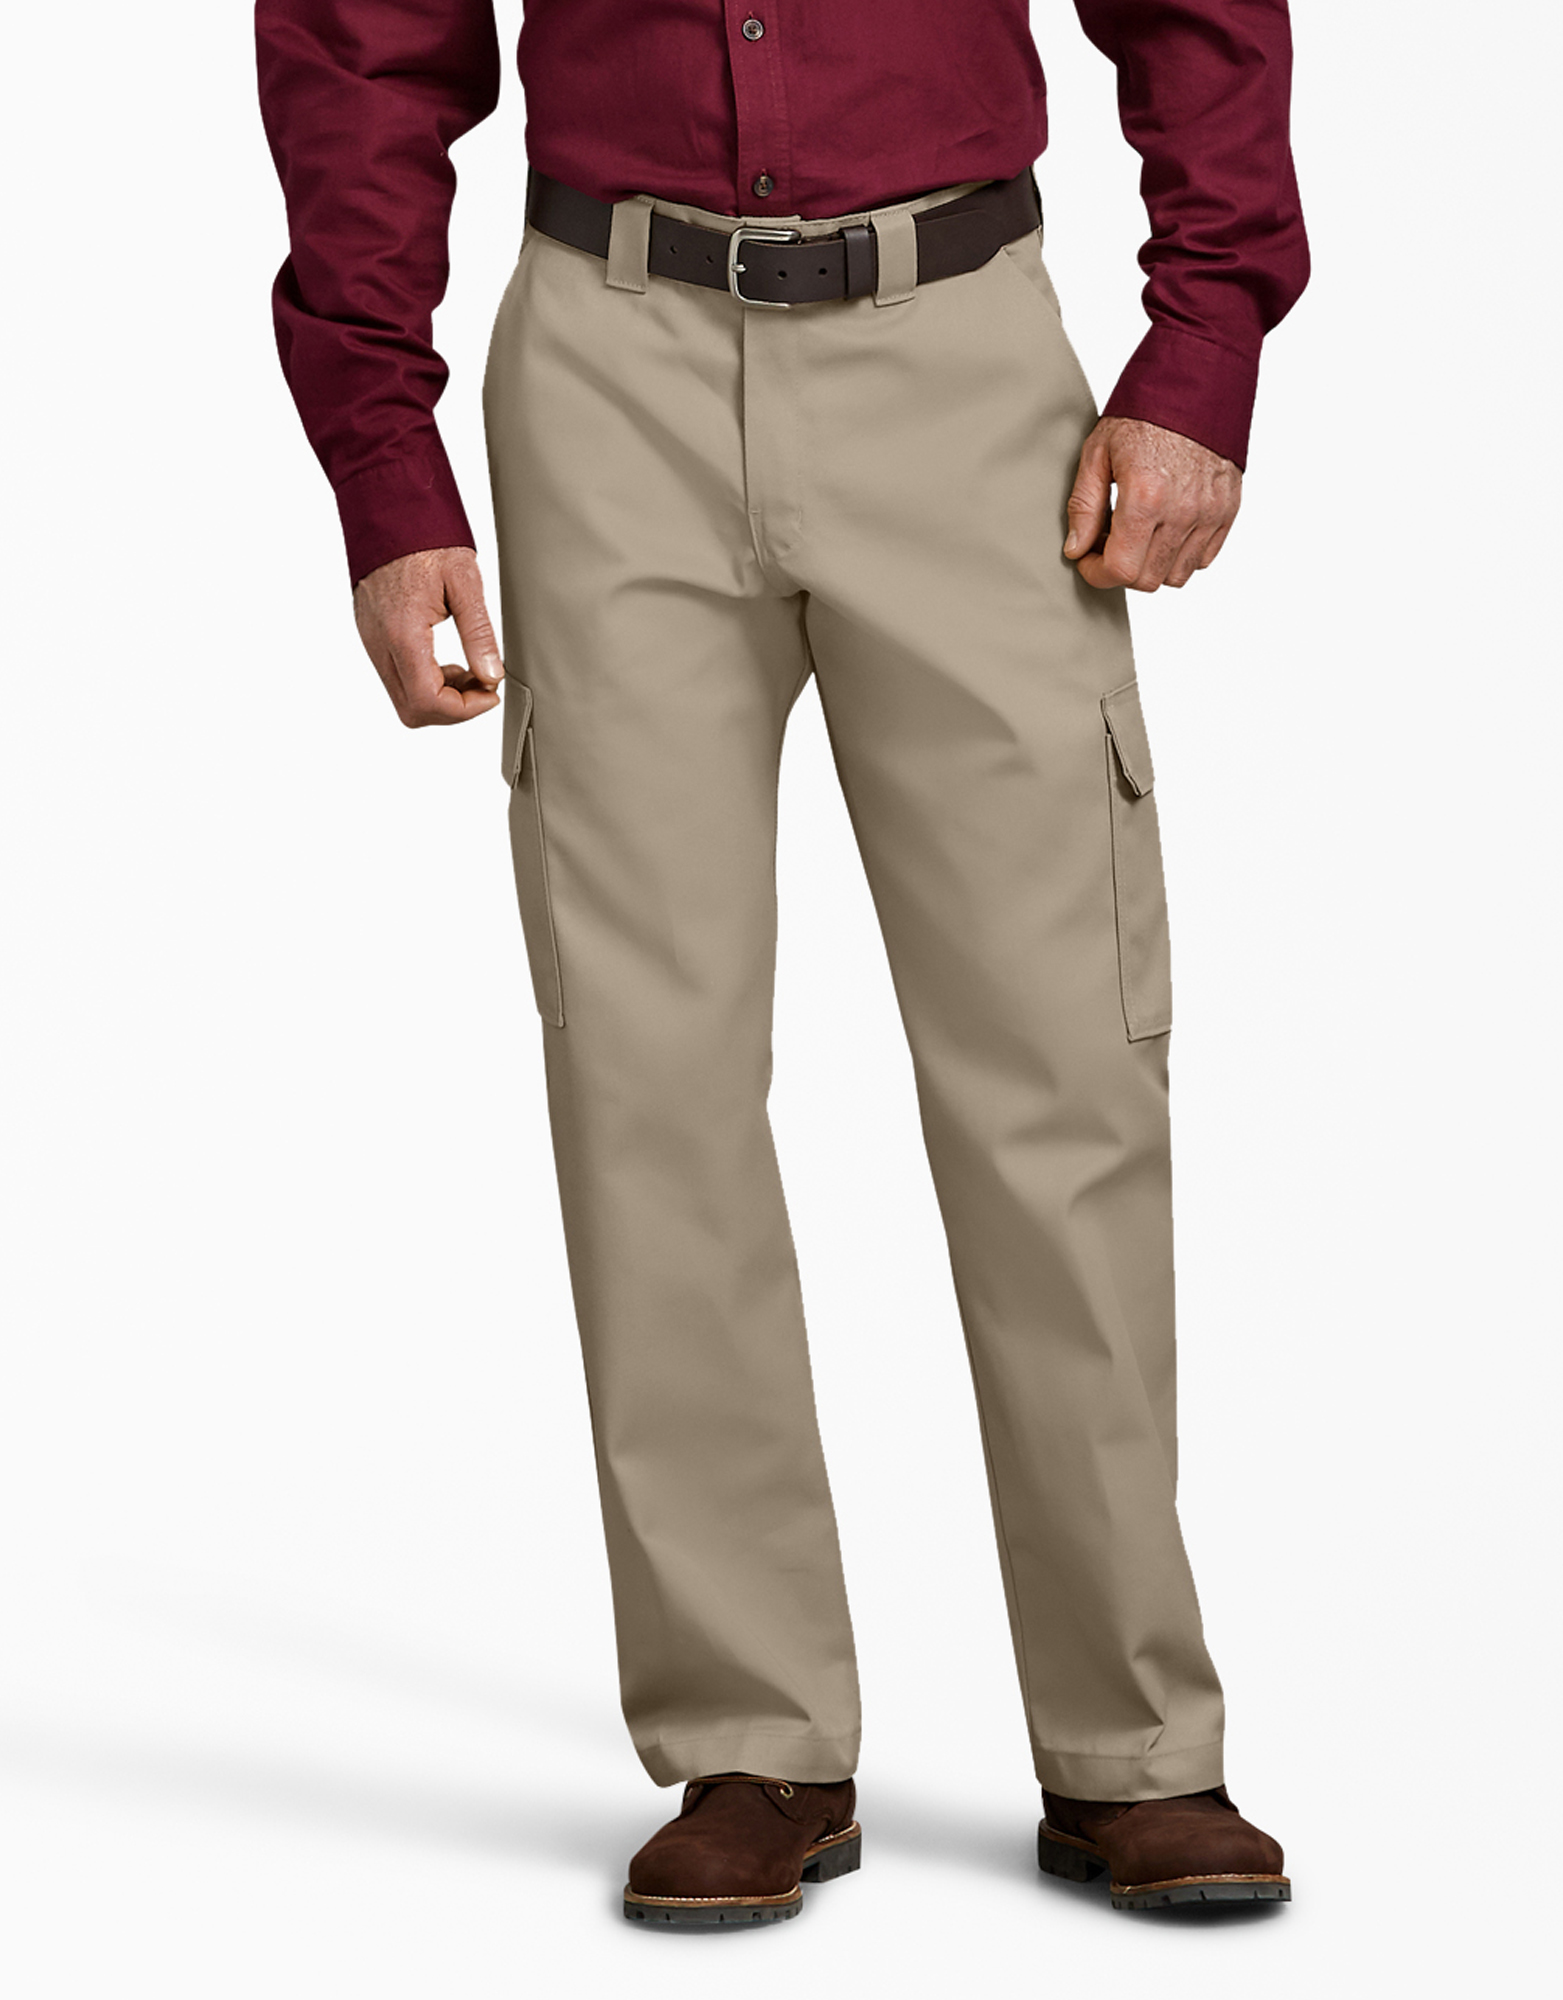 Relaxed Fit Straight Leg Cargo Work Pants - Desert Khaki (DS)